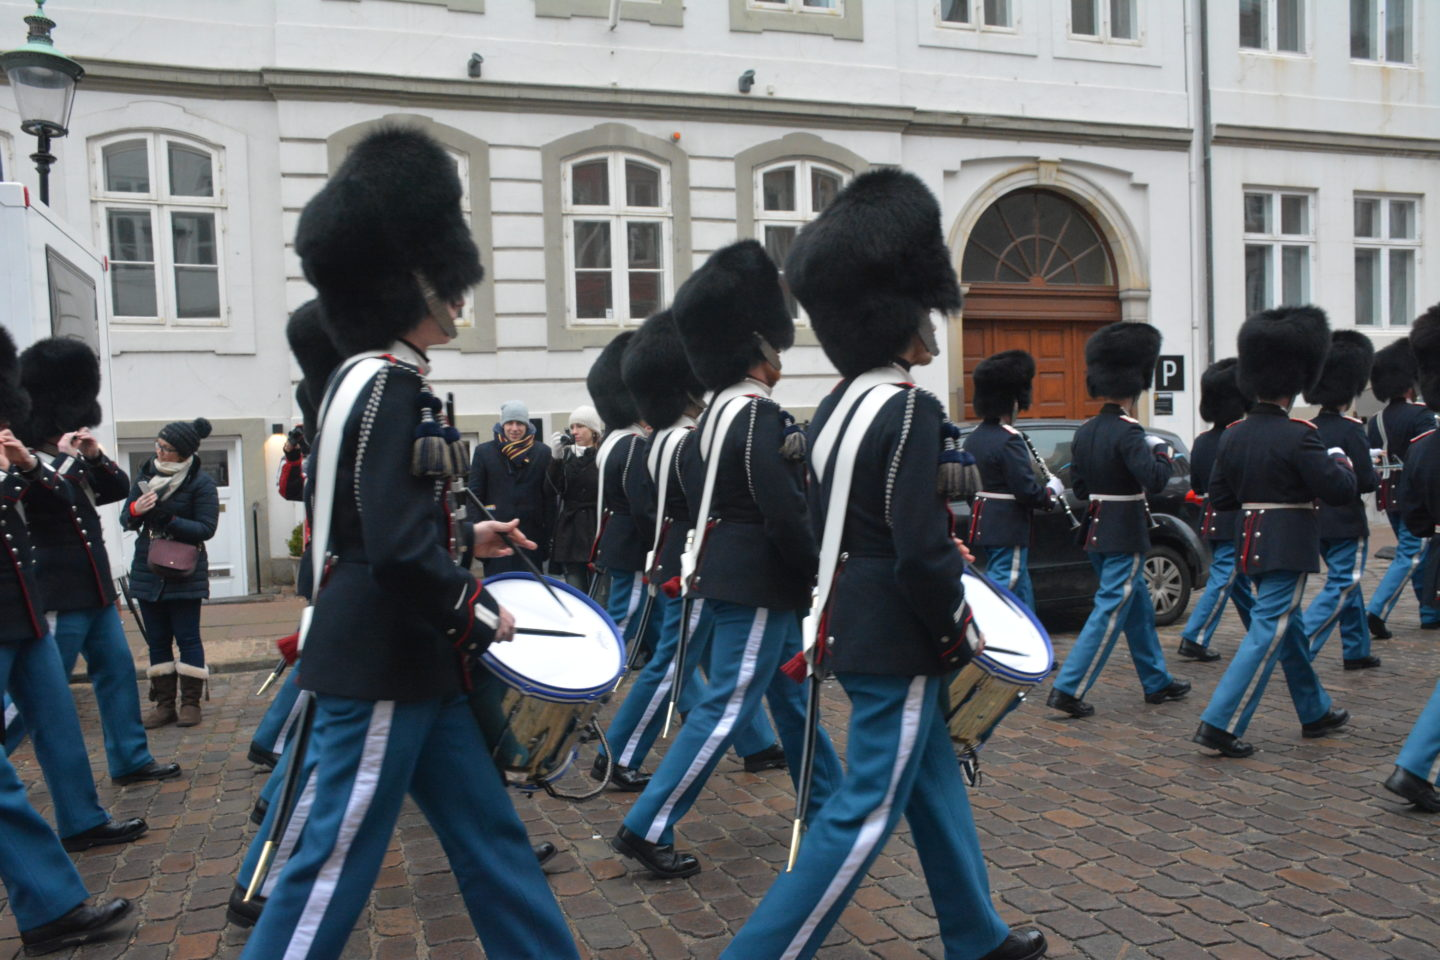 Soldiers in Copenhagen